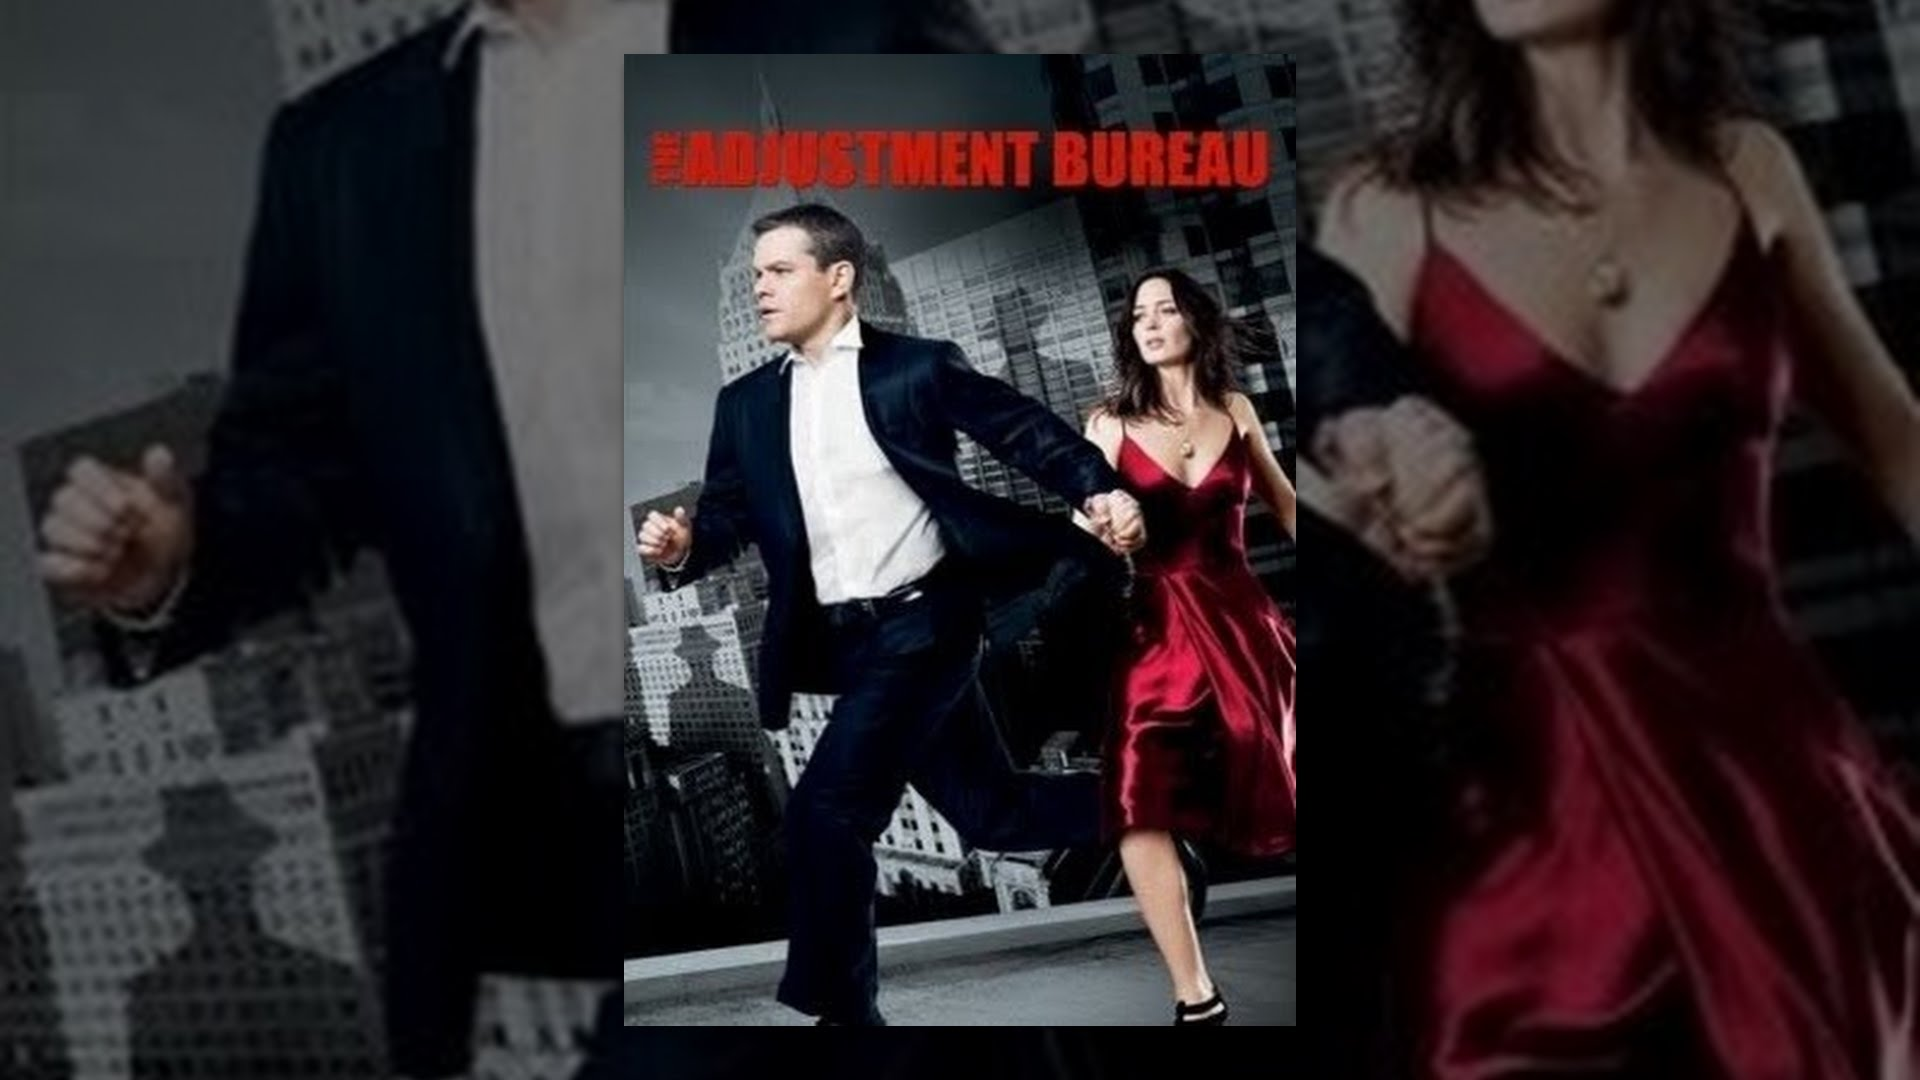 The adjustment bureau youtube for Bureau youtubeur